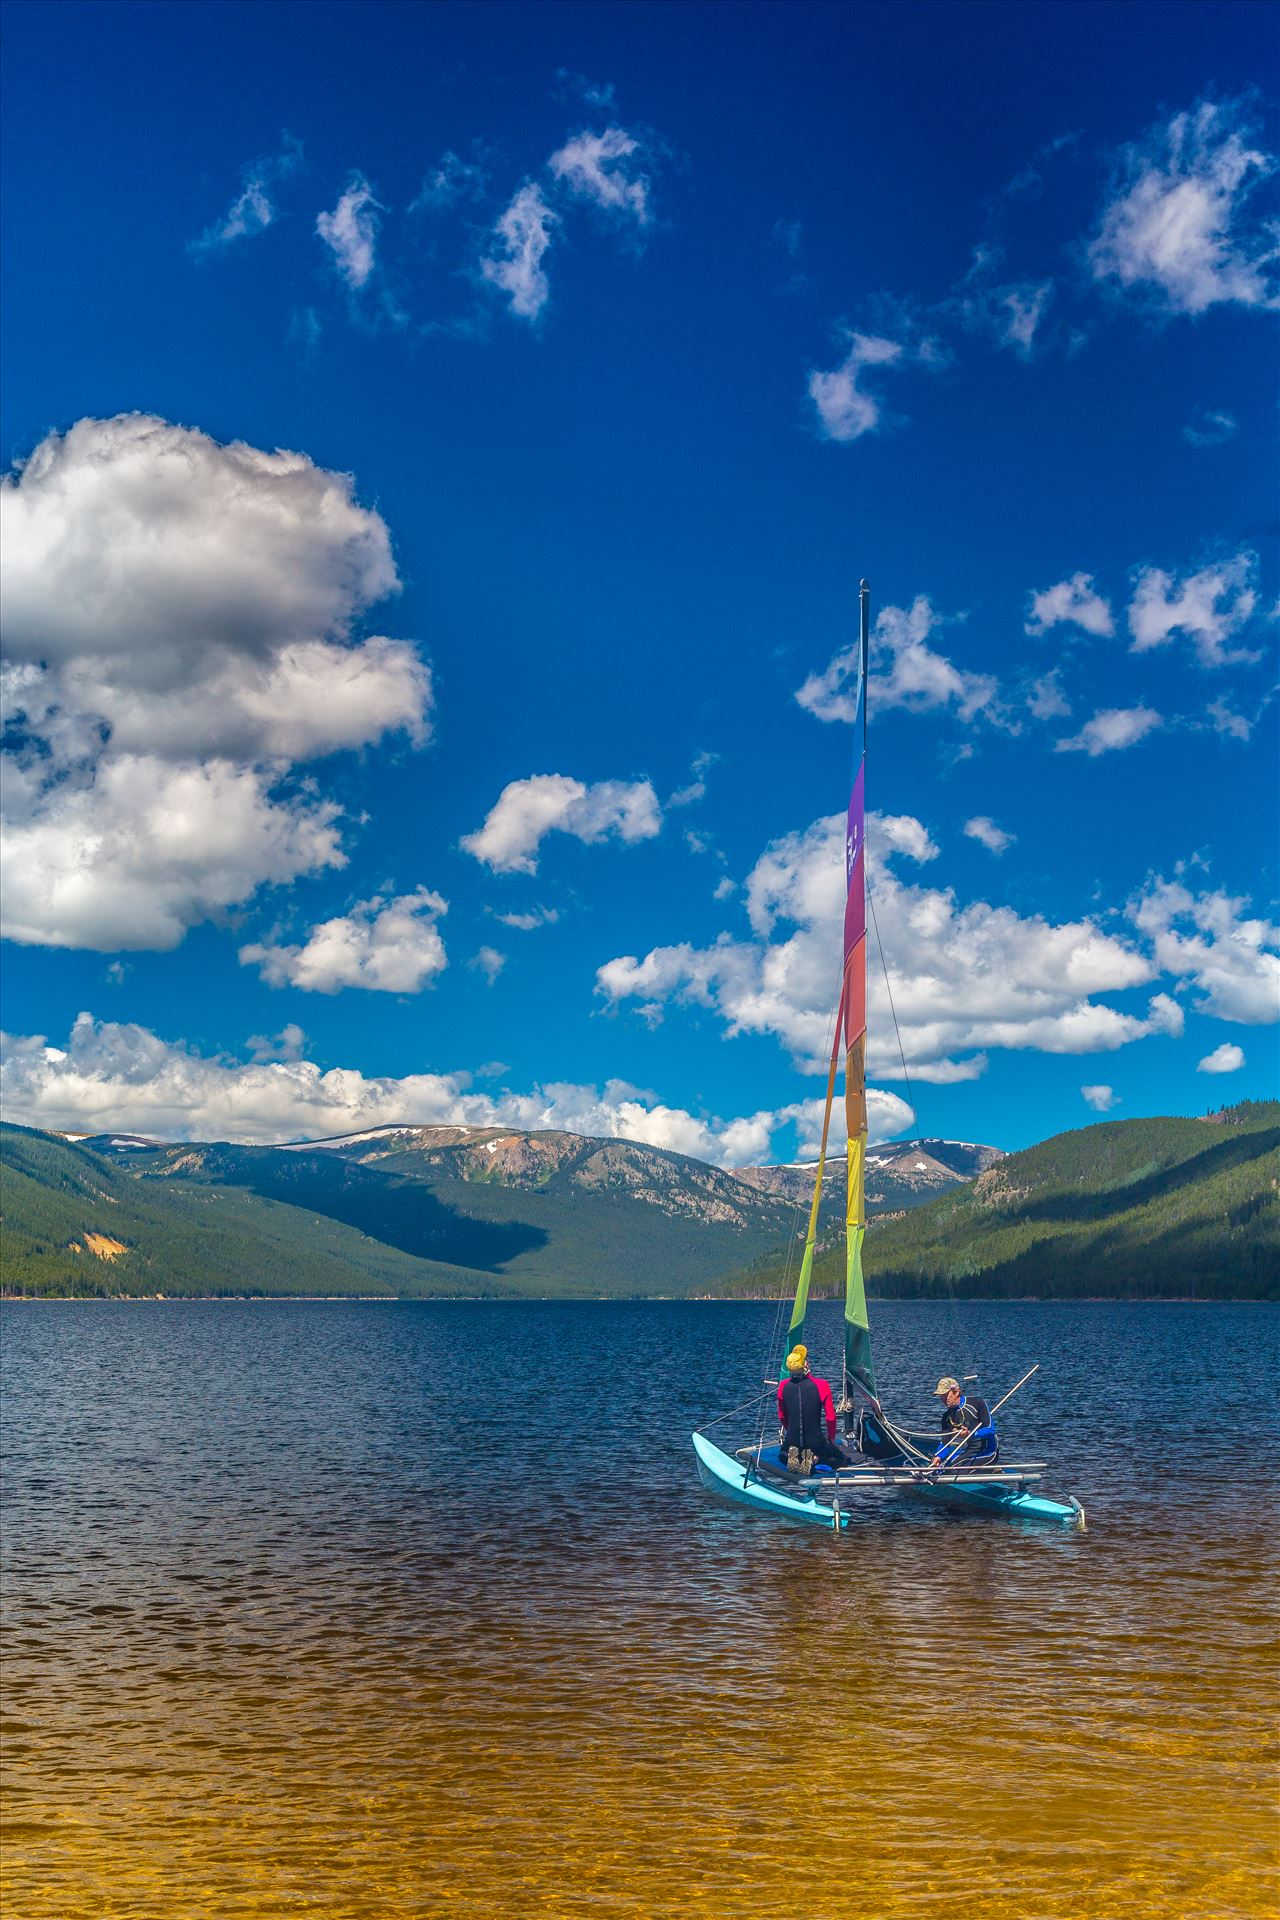 Sailing at Turquoise Lake - Sailing at Turqouise Lake, Leadville, Colorado. by D Scott Smith